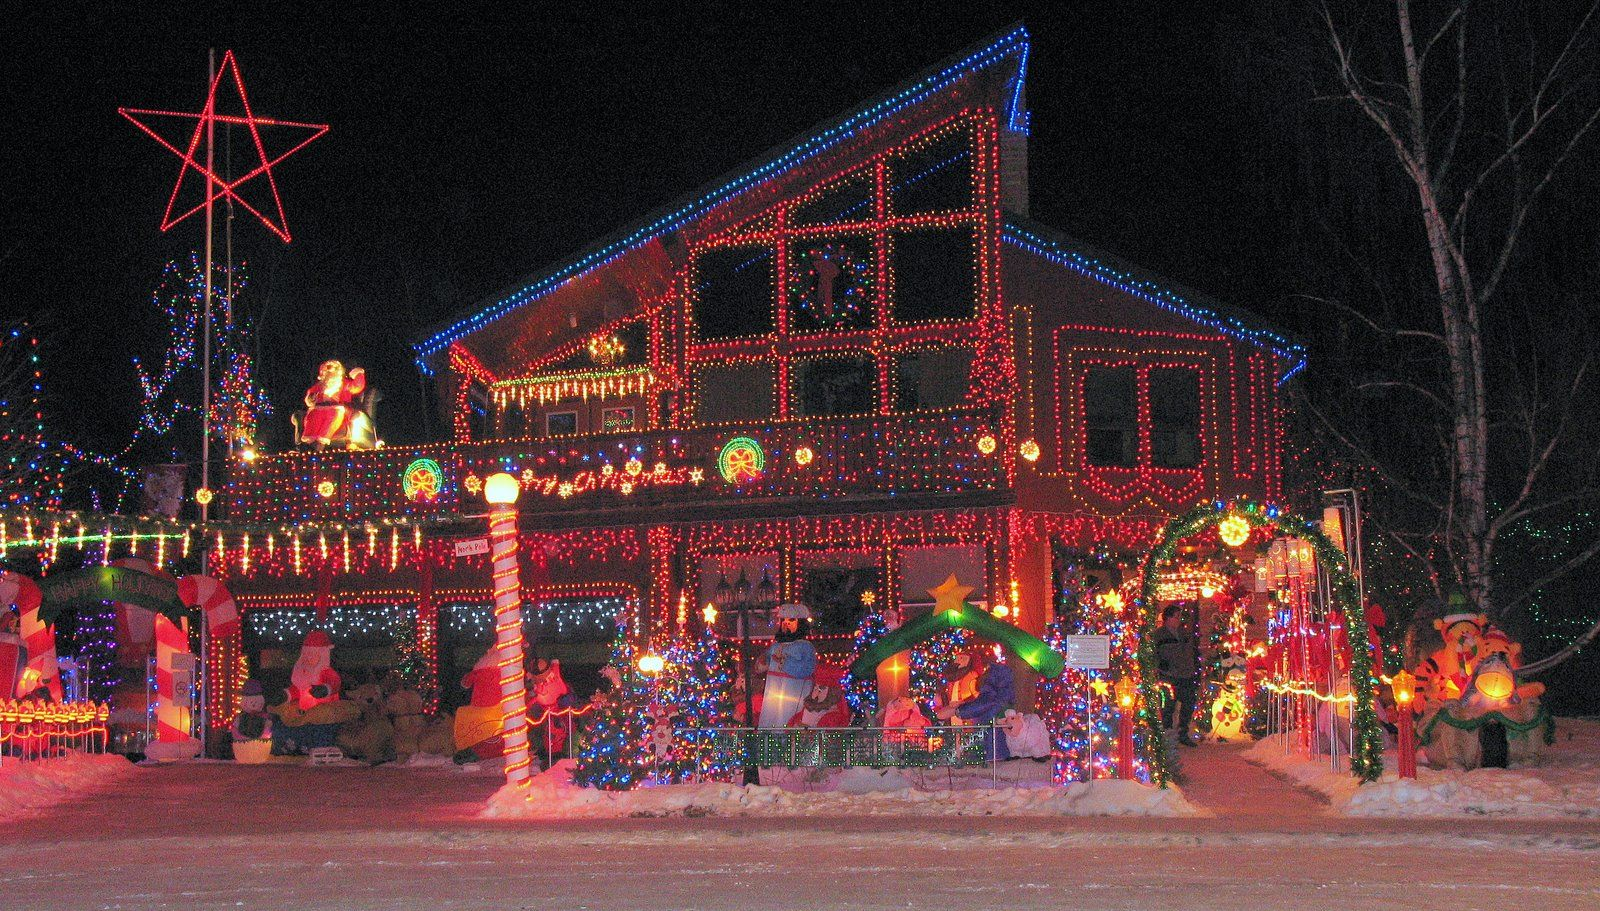 ... Light images of christmas, Xmas picture, Christmas lights on houses